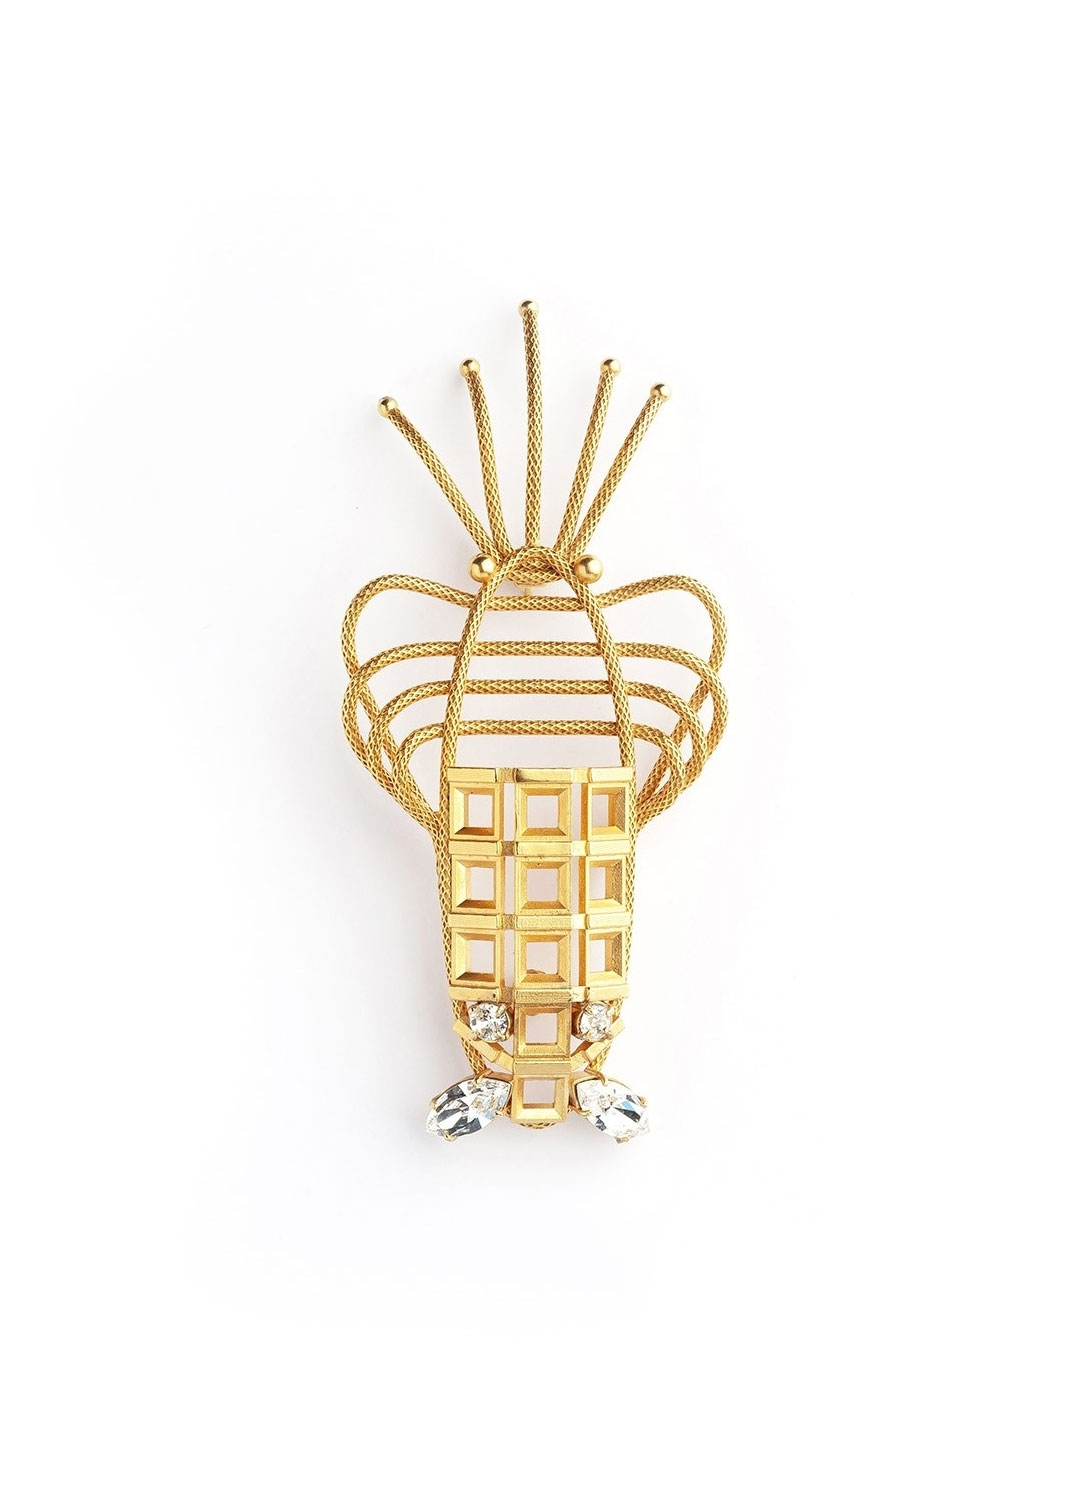 Lobster Luxury Brooch by Sonia Petroff on curated-crowd.com